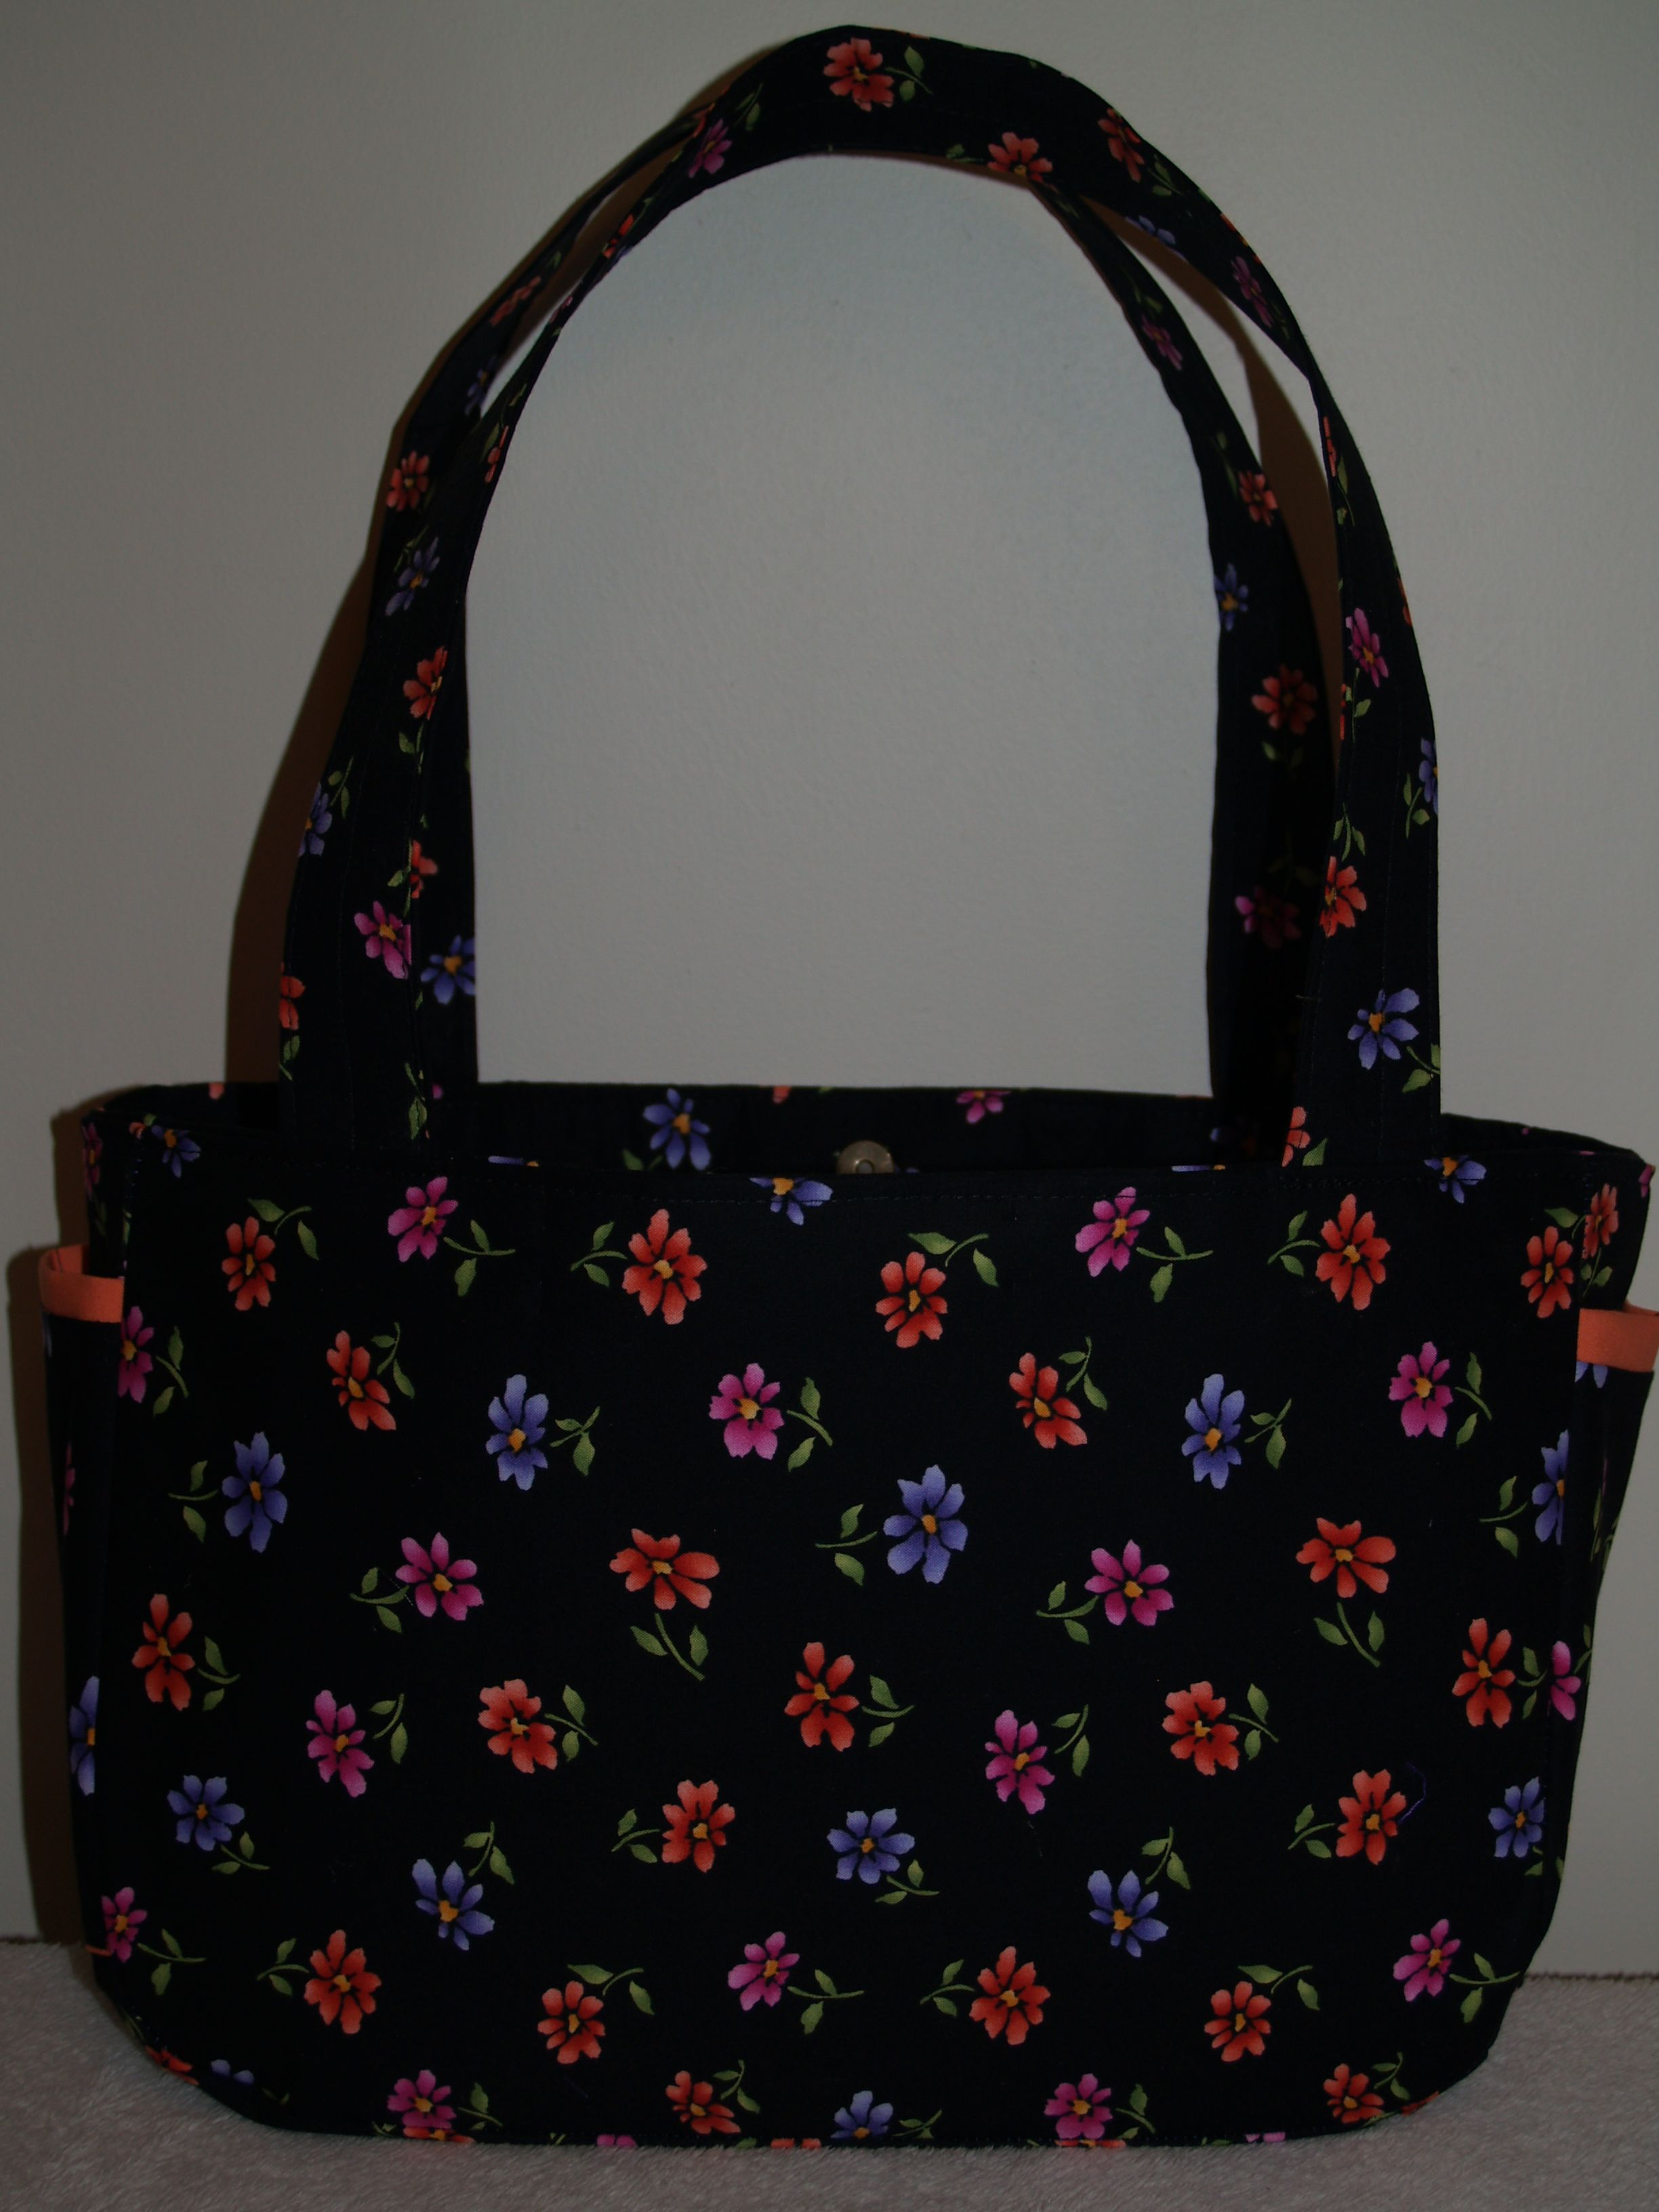 Black bag wflowers for sale 3500 find the bar harbor bag lady on black bag wflowers for sale 3500 find the bar harbor bag lady on izmirmasajfo